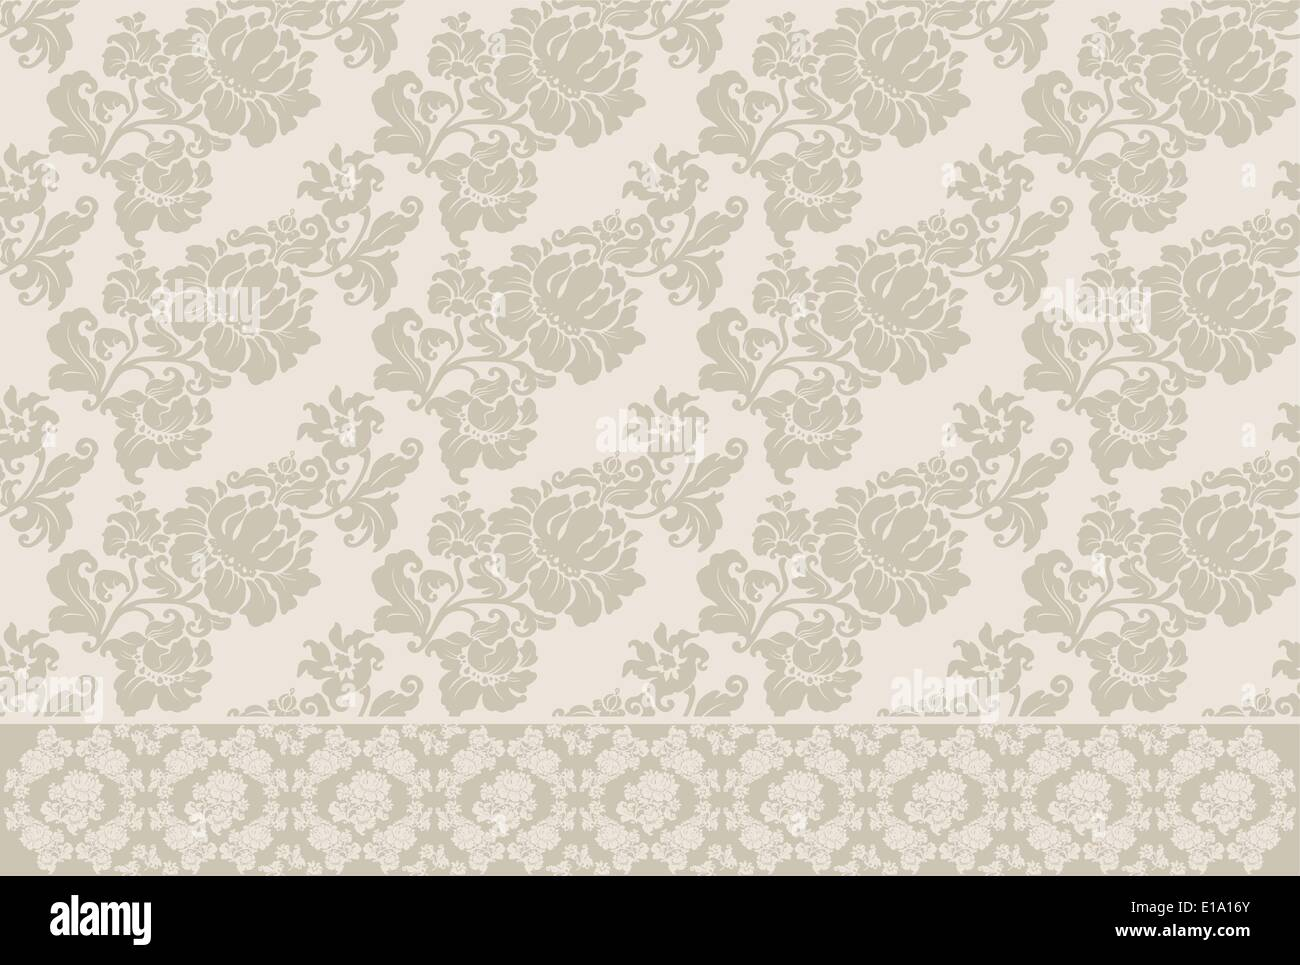 ornament-background old vector - Stock Vector